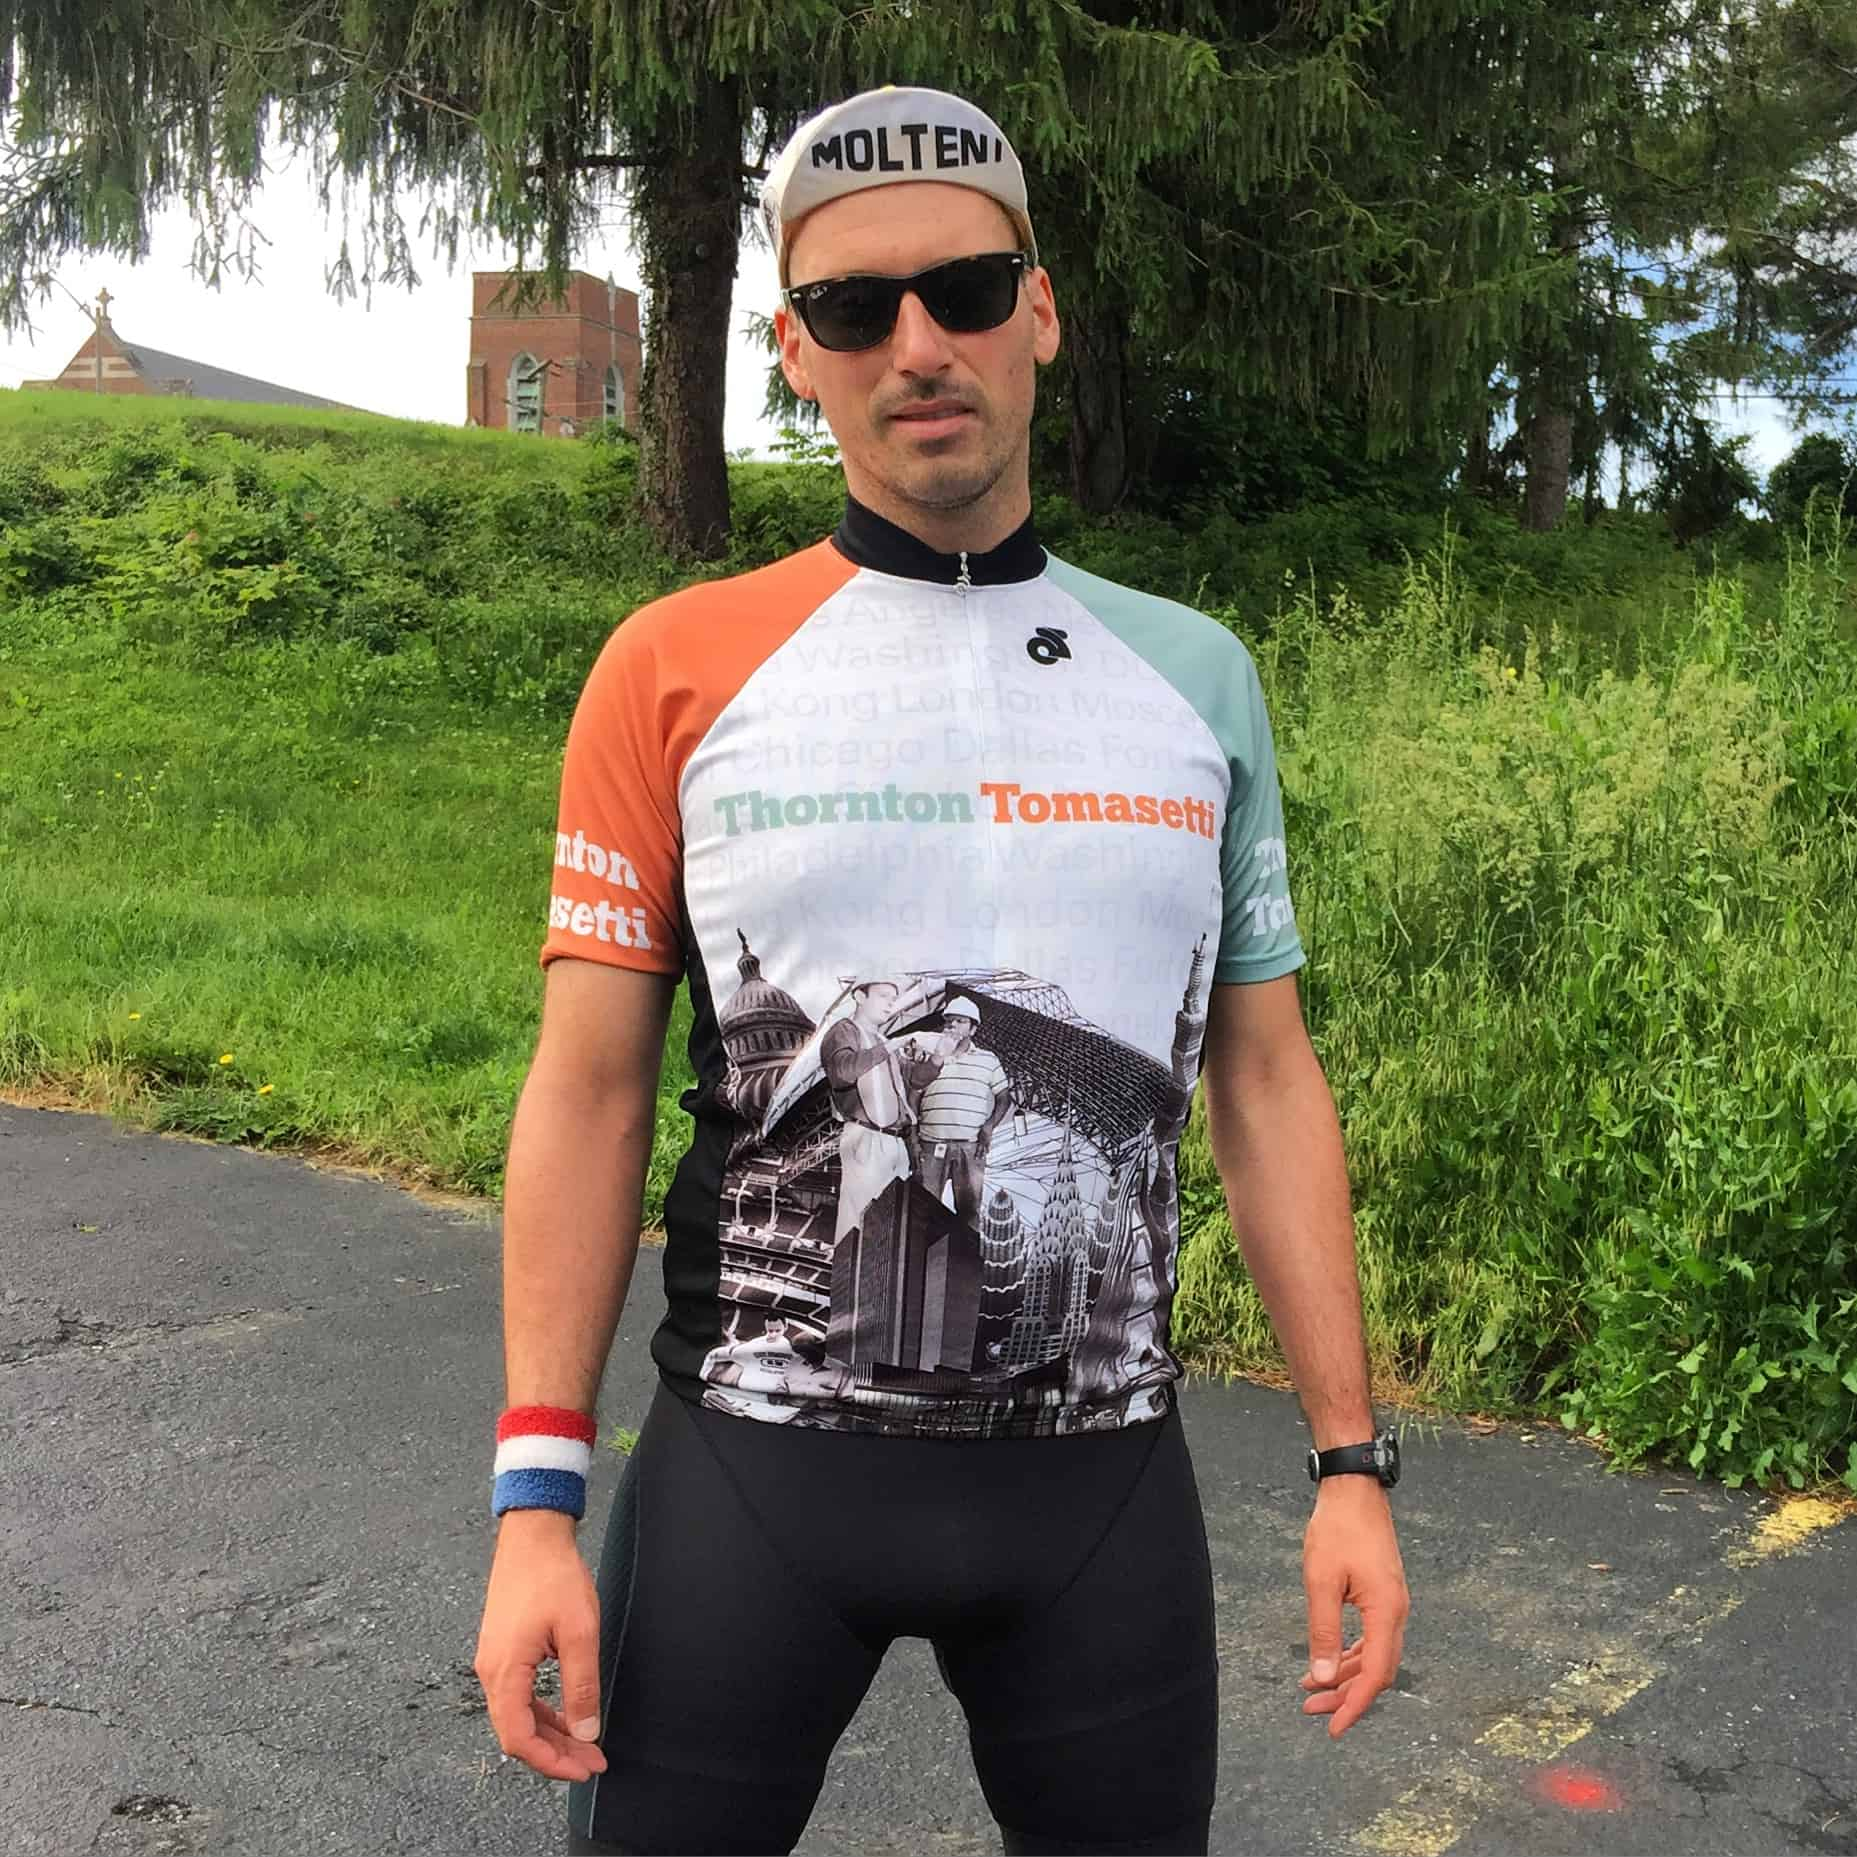 My Thornton Tomasetti bike jersey is my favorite. My best friend from Architecture School @cvwphoto designed it and sent it to me a few years ago. It has pictures of all their buildings on it! He has worked for TT for over 10 years! #amazing #architectsonbikes #thorntontomasetti #⛰ #blueridgeparkway #coast2coastbikeride #molteni #mikeriscicavip #smugglinggrapes